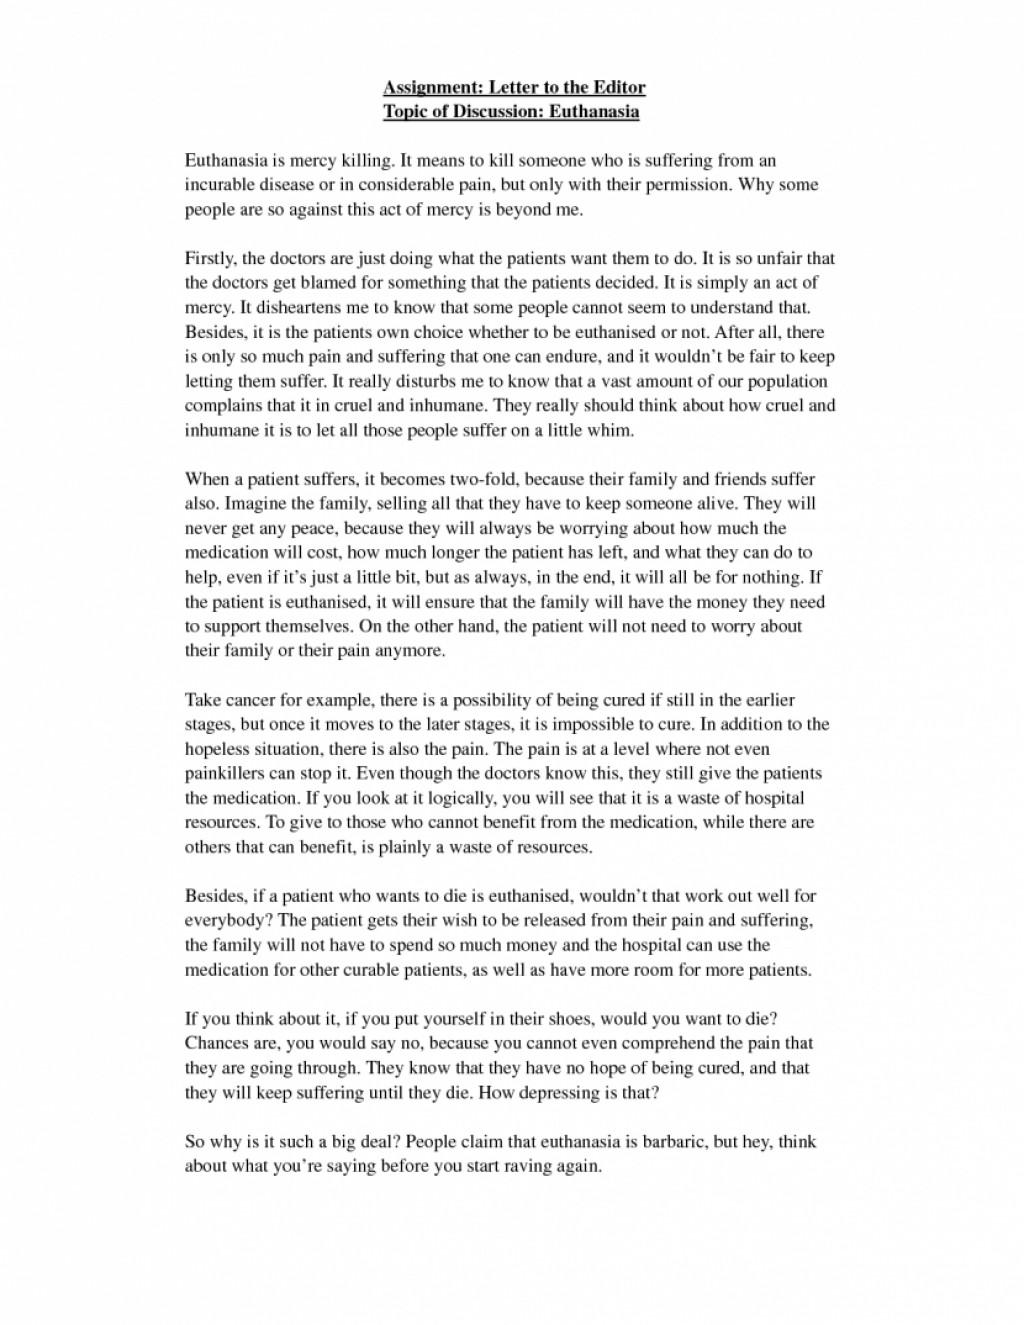 025 Middle School Essay Topics Argumentativemples College Printables Corner For Pdfmple Of Persuasive Essays High Onwe Bioinnovat Students With Articles Archaicawful Prompts Argumentative Funny Large